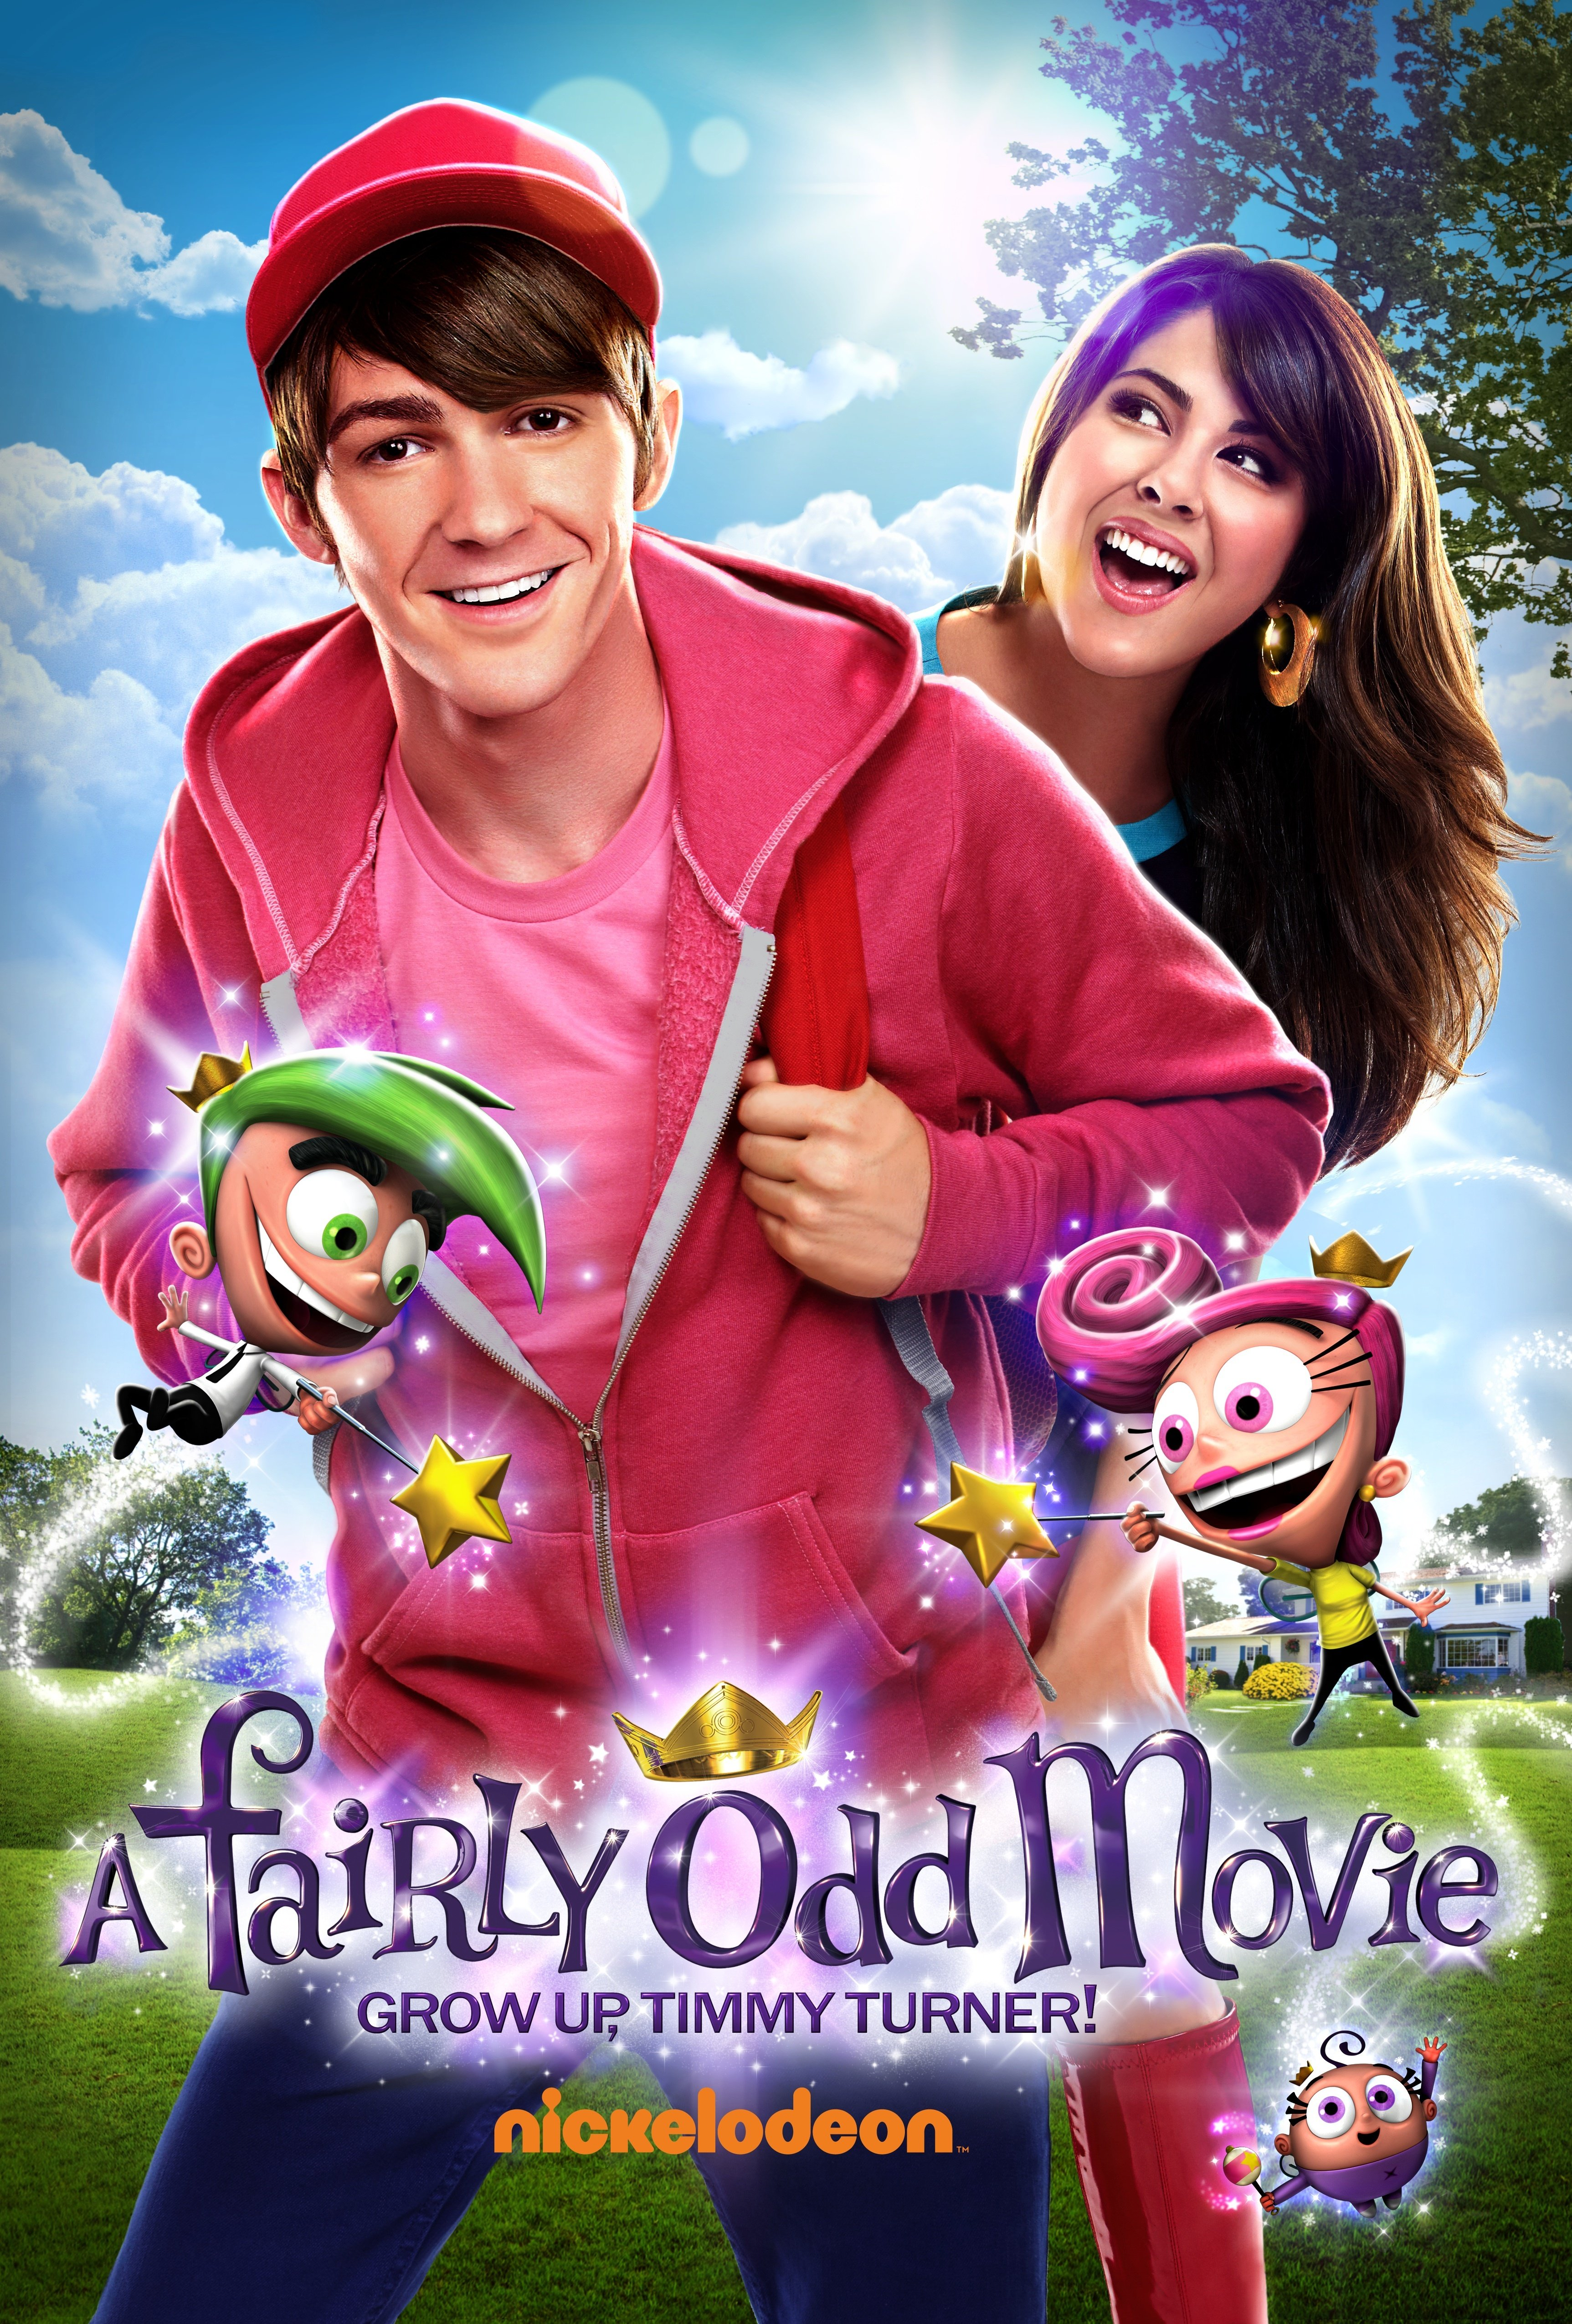 A Fairly Odd Movie: Grow Up, Timmy Turner! kapak